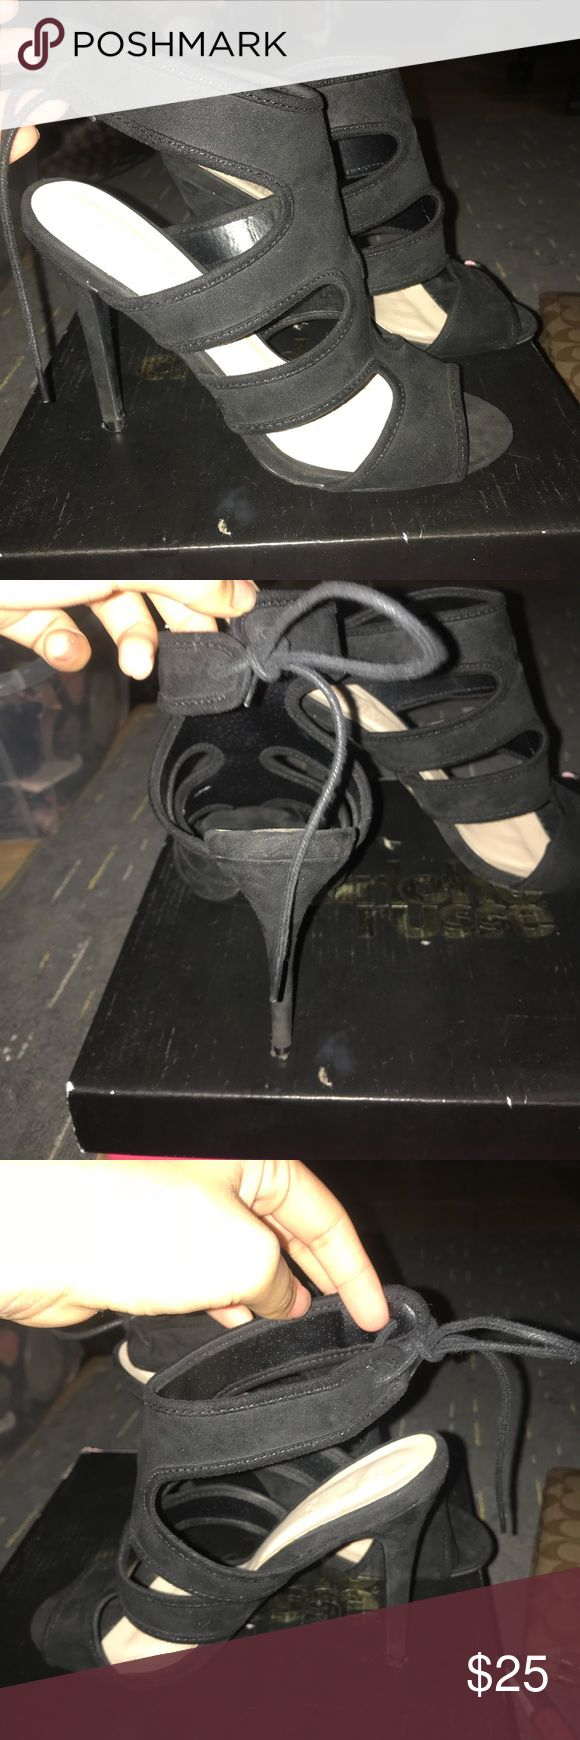 Black heels Charlotte Russe Black SUEDE LIKE NEW CONDITION ONLY WORN ONCE CHARLOTTE ROUSE HEELS STILL HAVE THE BOX VERY CUTE THEY TIE FROM THE ANCKLE WITH LACE NO TEARS OR SCRATCHES Charlotte Russe Shoes Heels